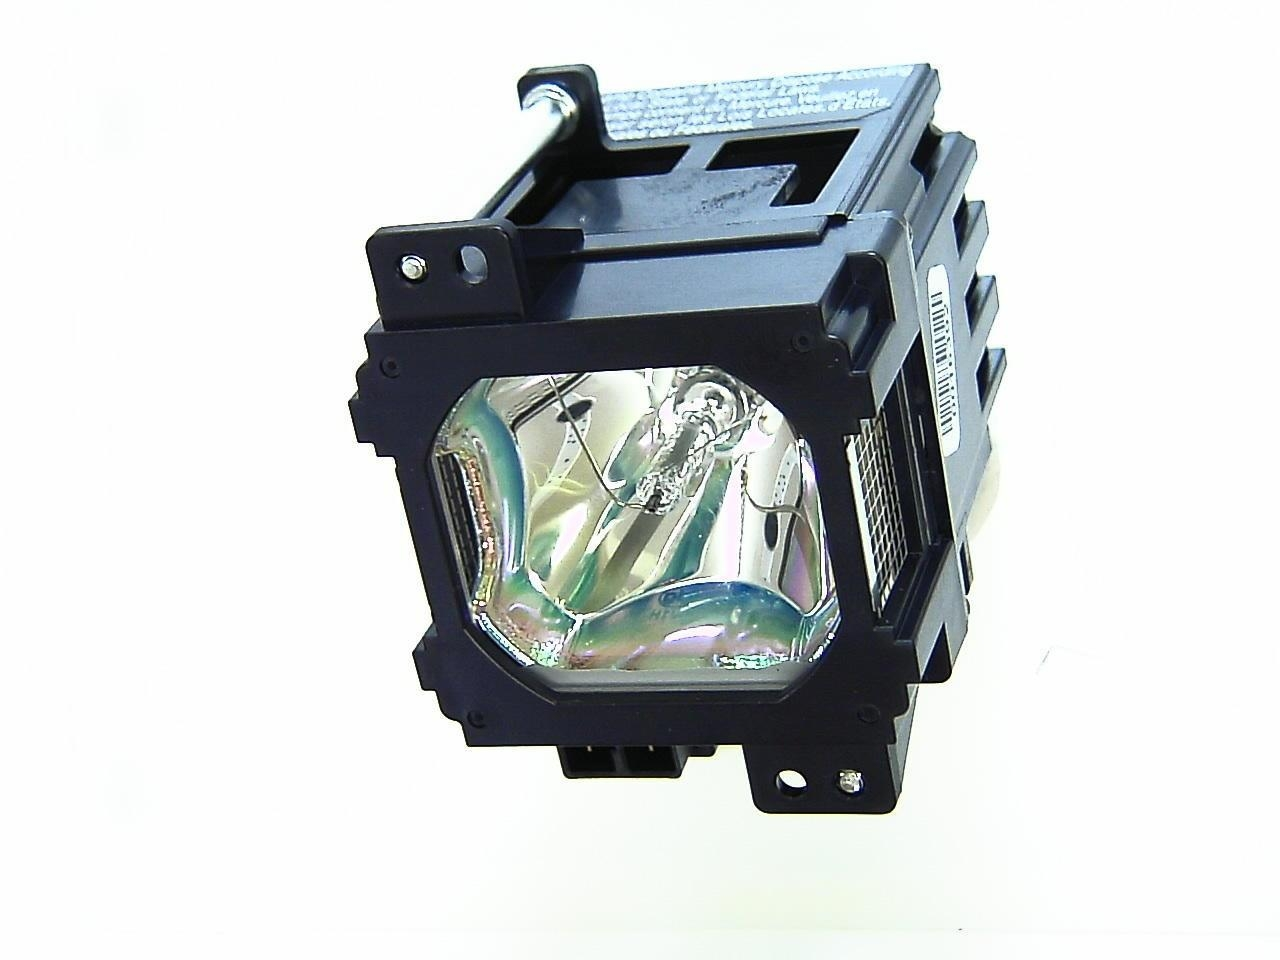 DreamVision DREAMBEE PRO Projector Lamp Module